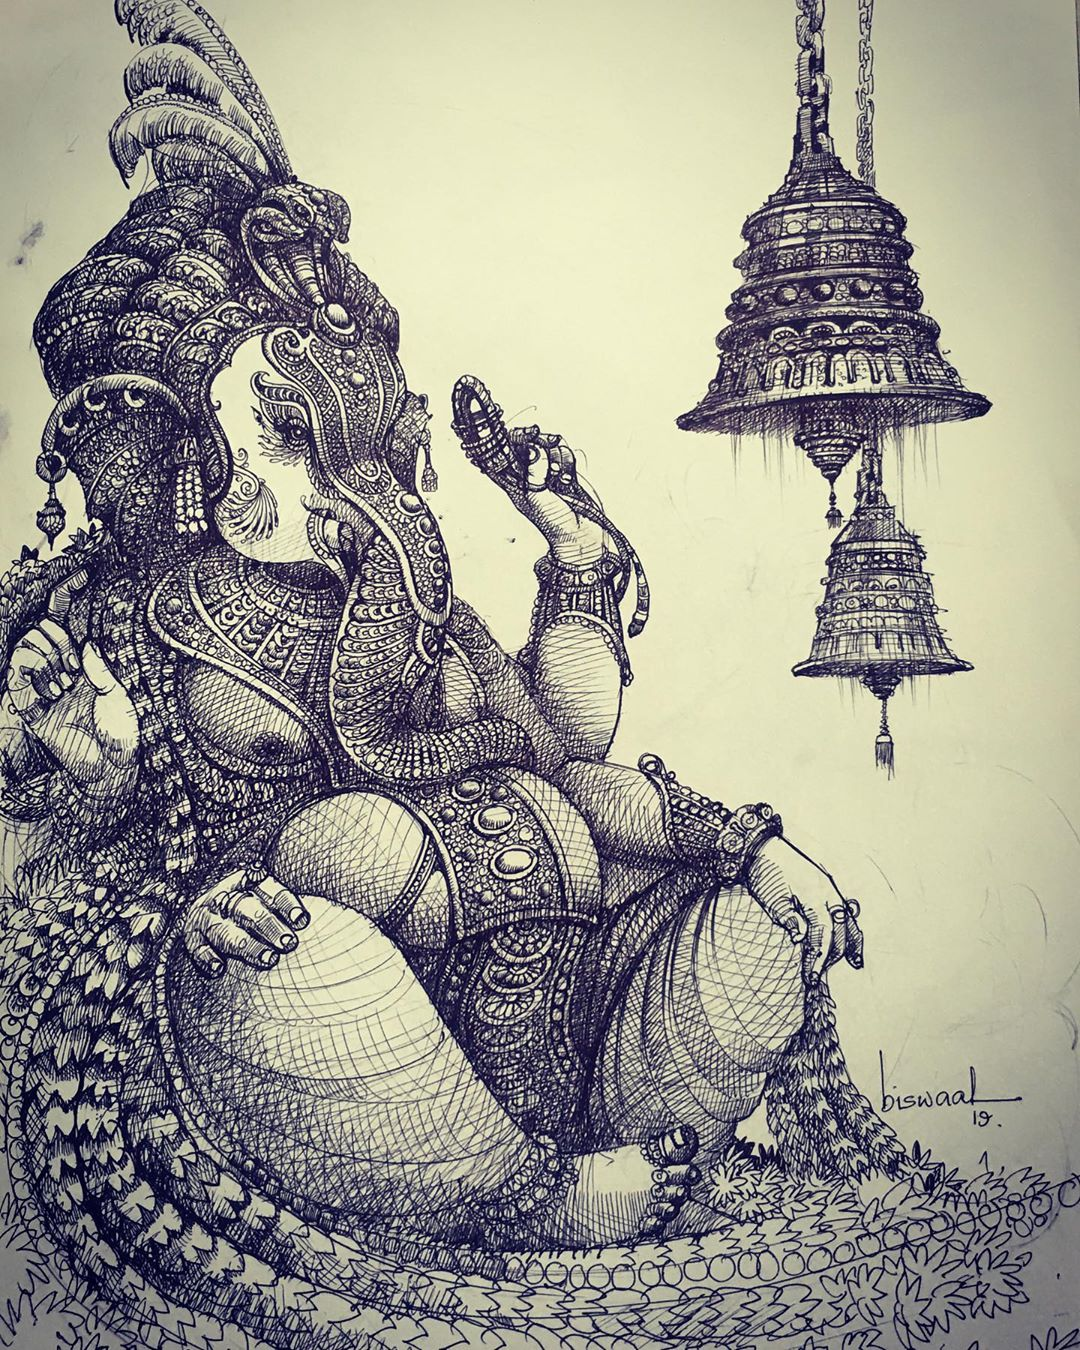 pen drawing ganesh indian god by bijay biswaal